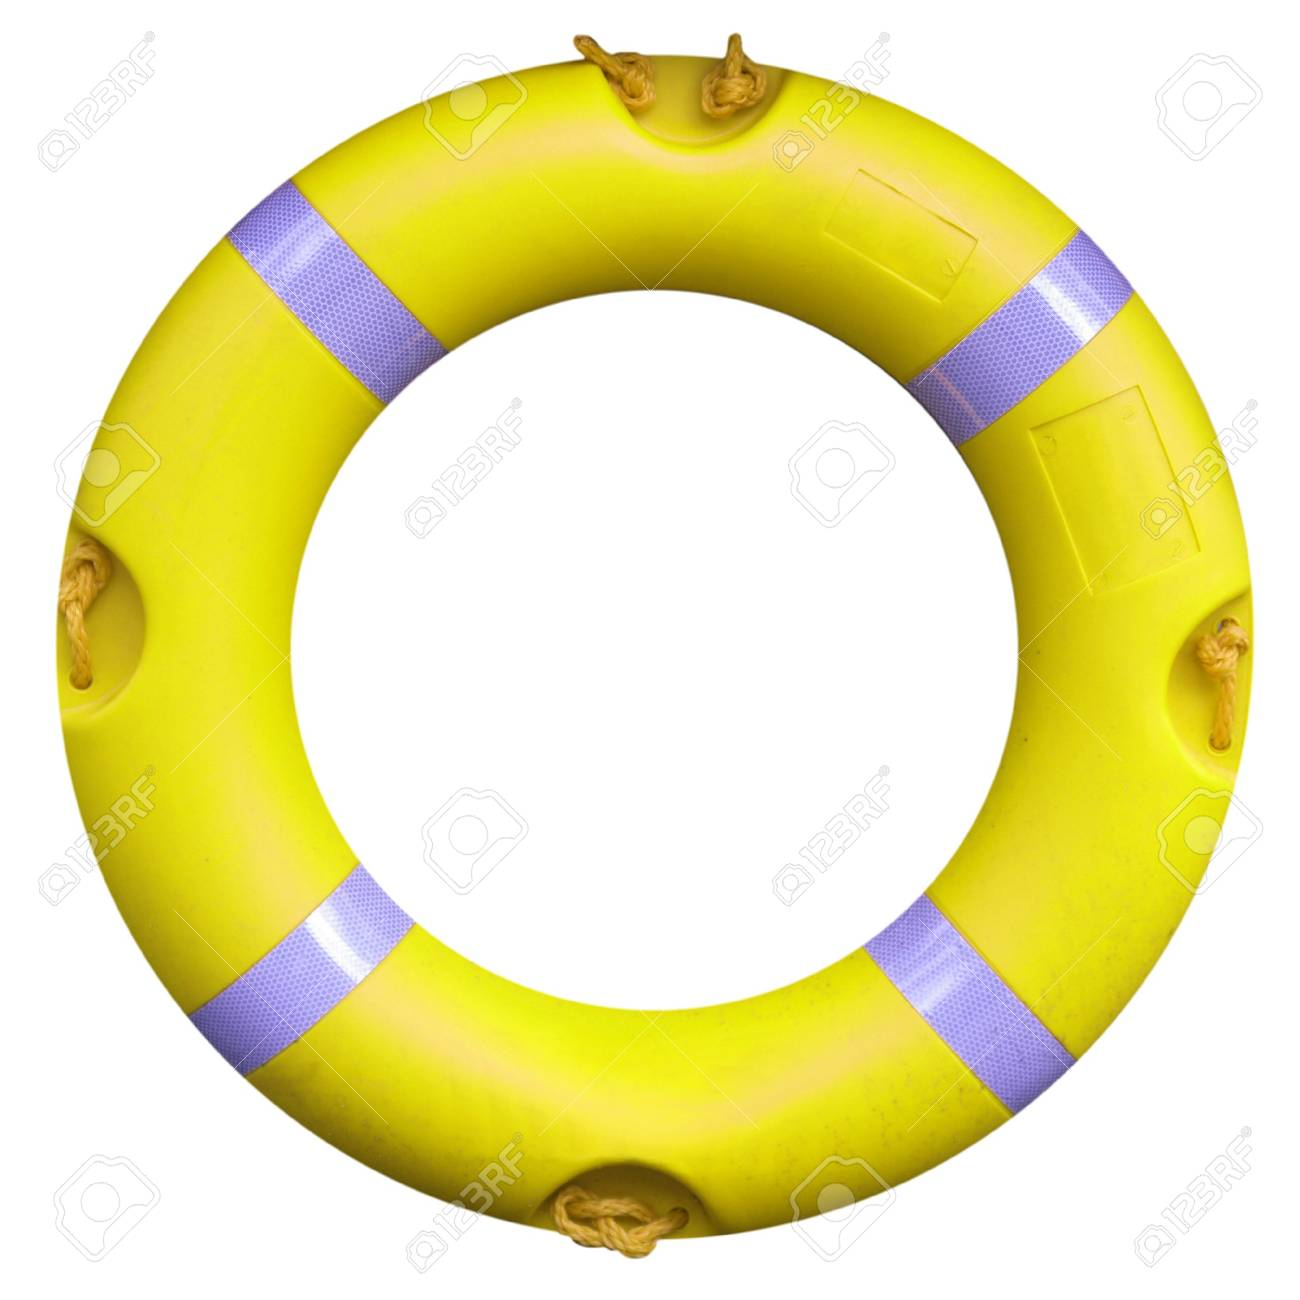 A life buoy for safety at sea - isolated over white background Stock Photo - 7323960